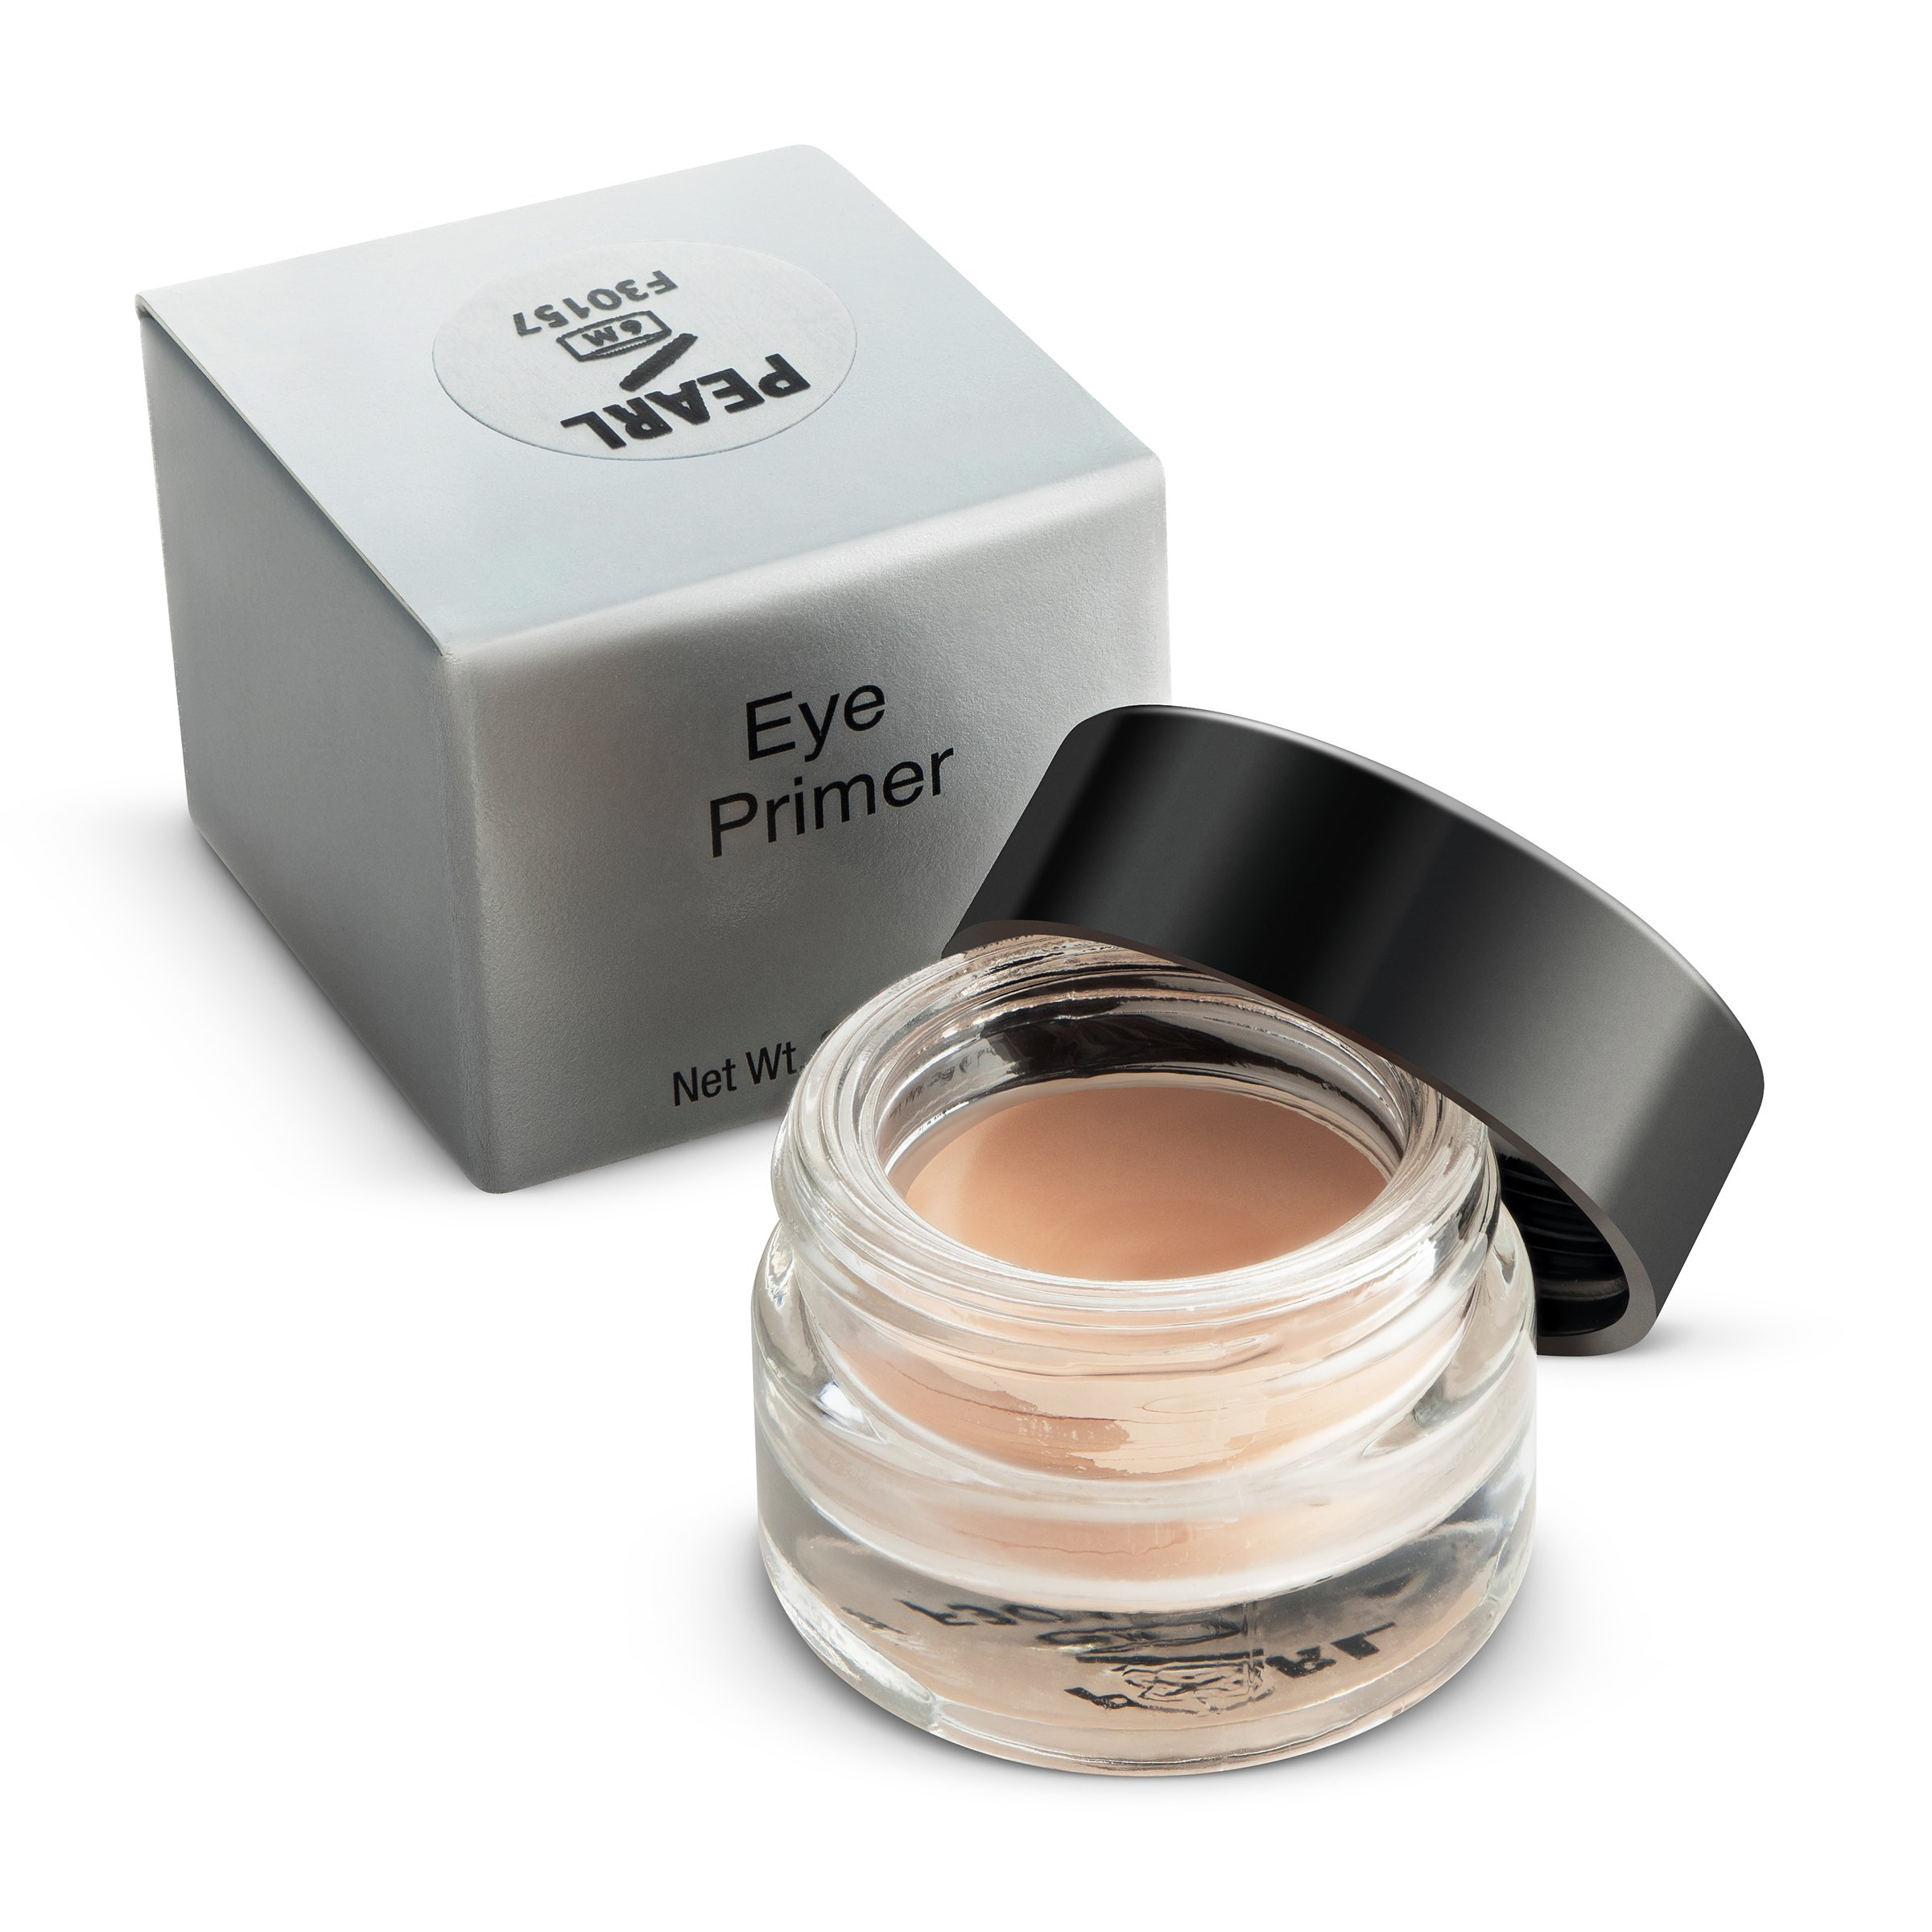 Jolie Luminous Eye Primer Base, Pearl - Waterproof Net Wt. 3g by Jolie